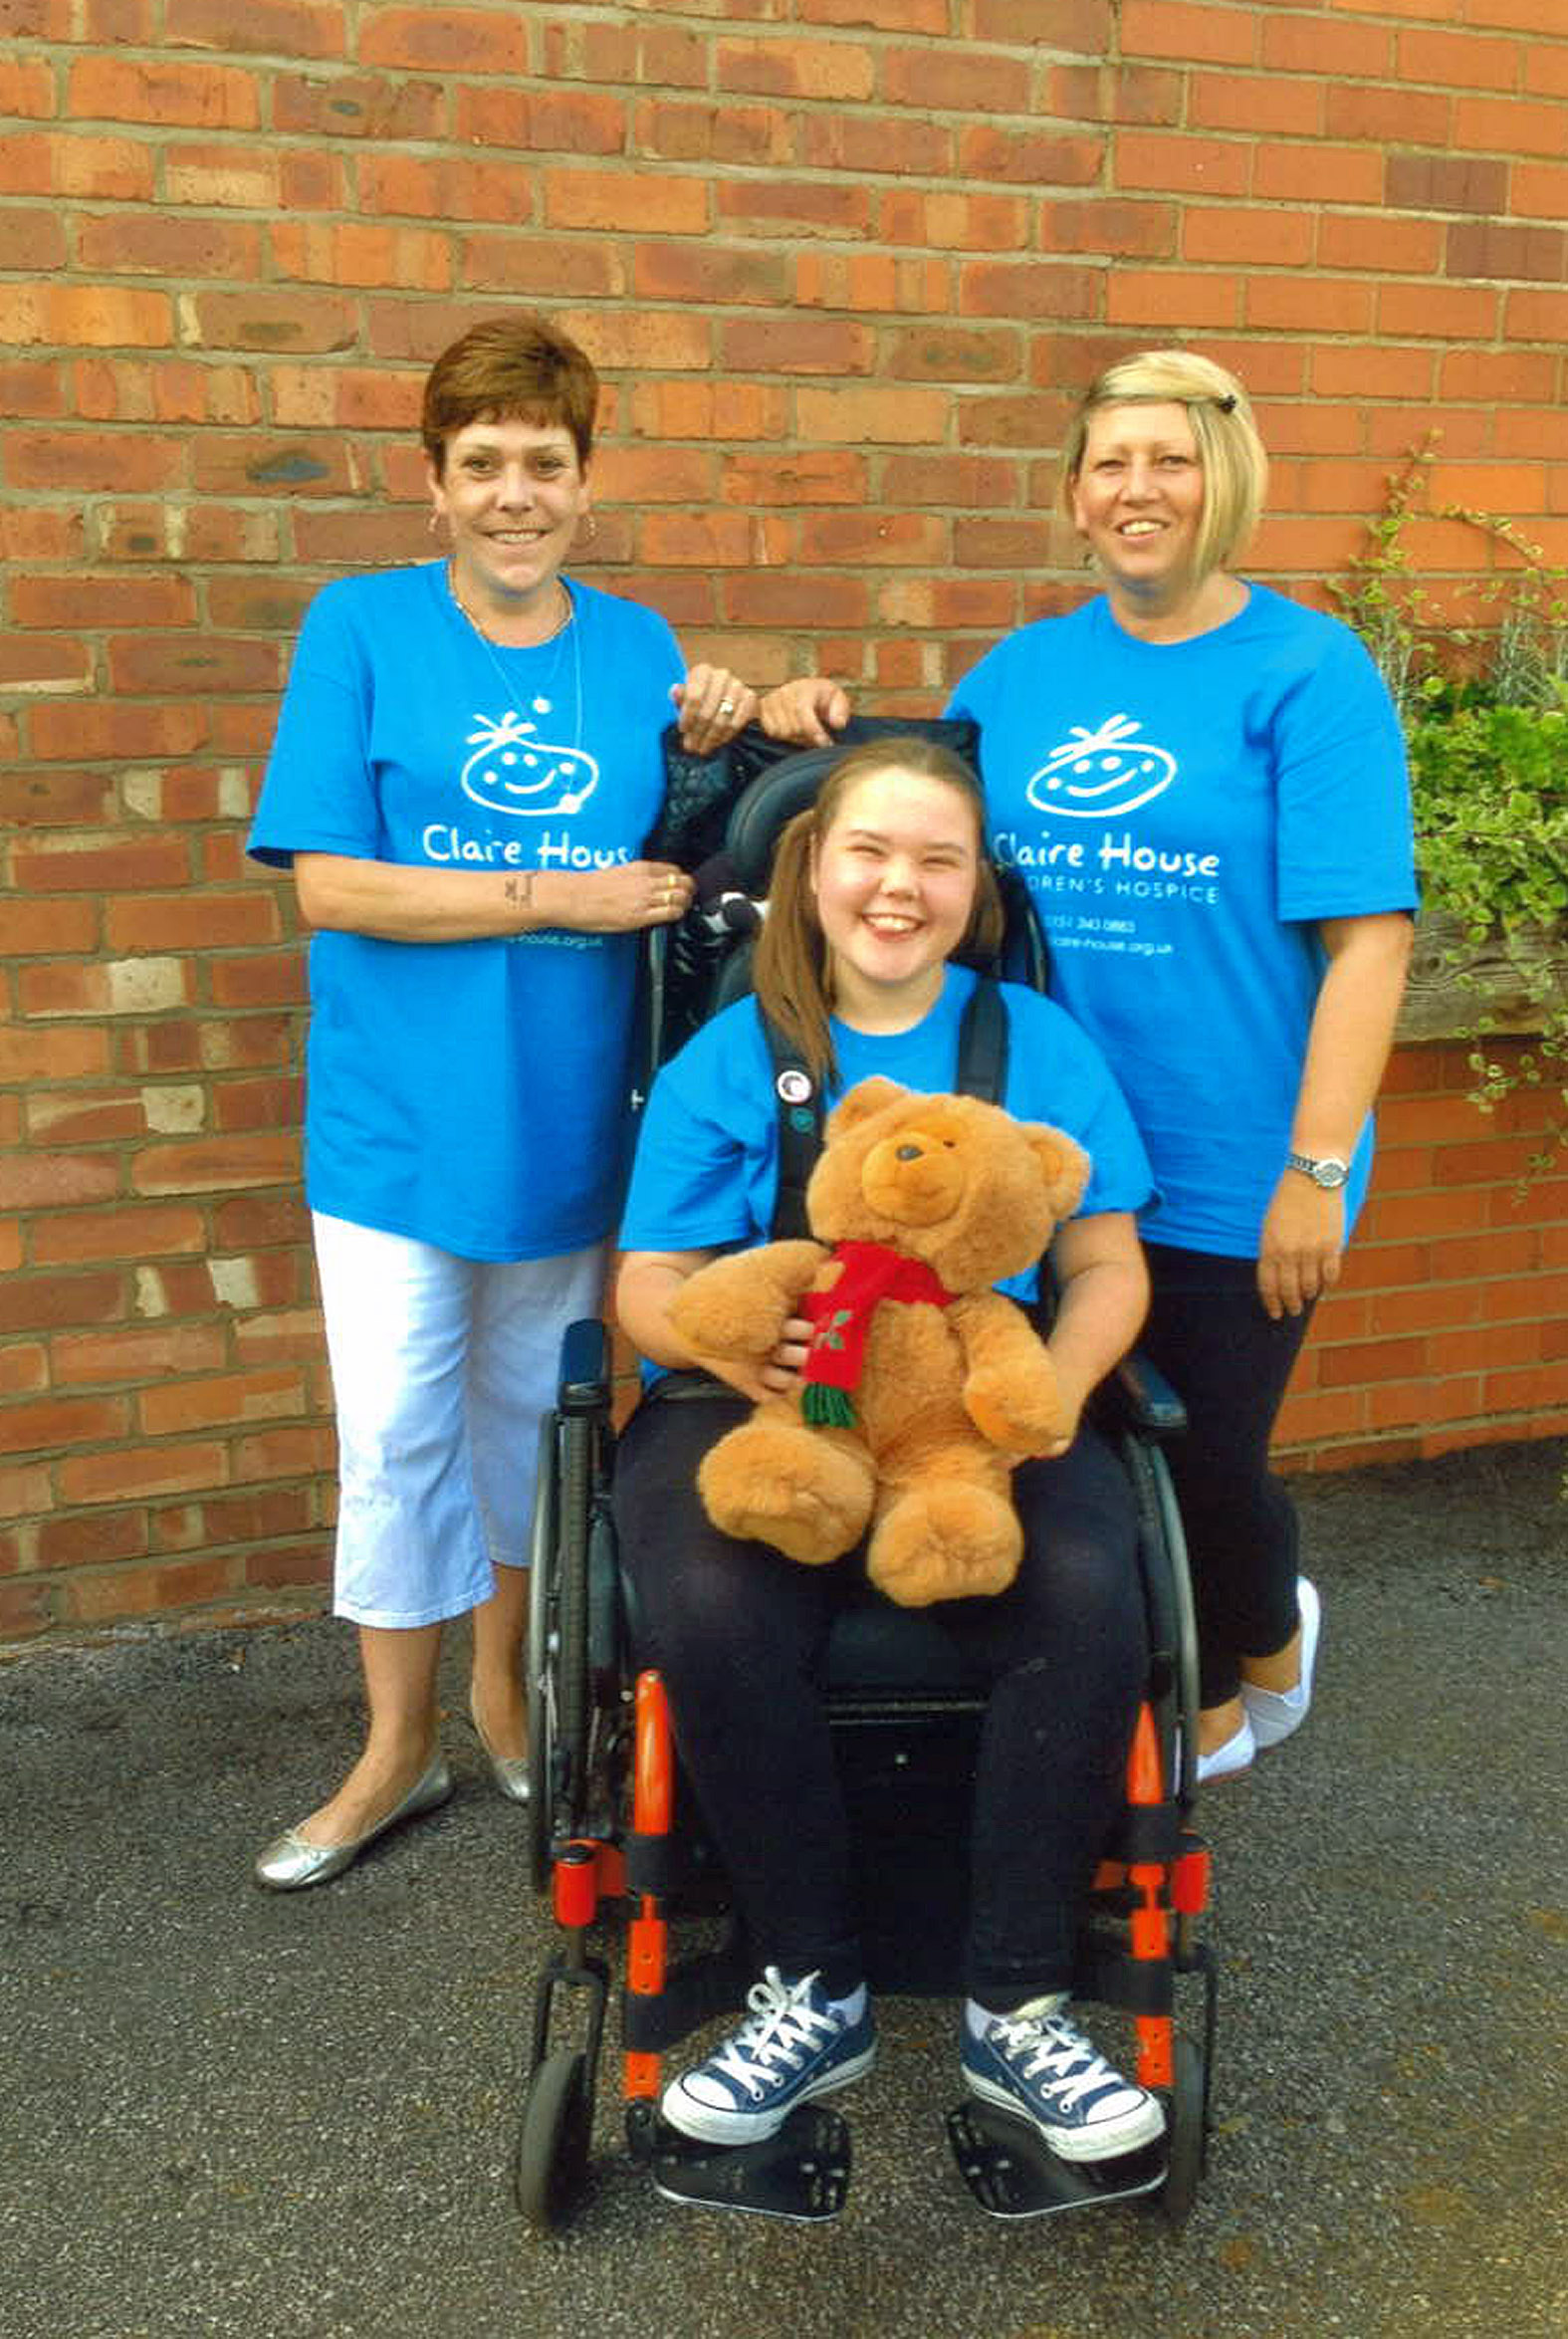 Elle with mum Michelle, right, and Anita Singleton, at a fundraiser at Rudheath Social Club last summer for Claire House Children's Hospice, which was organised by Anita.